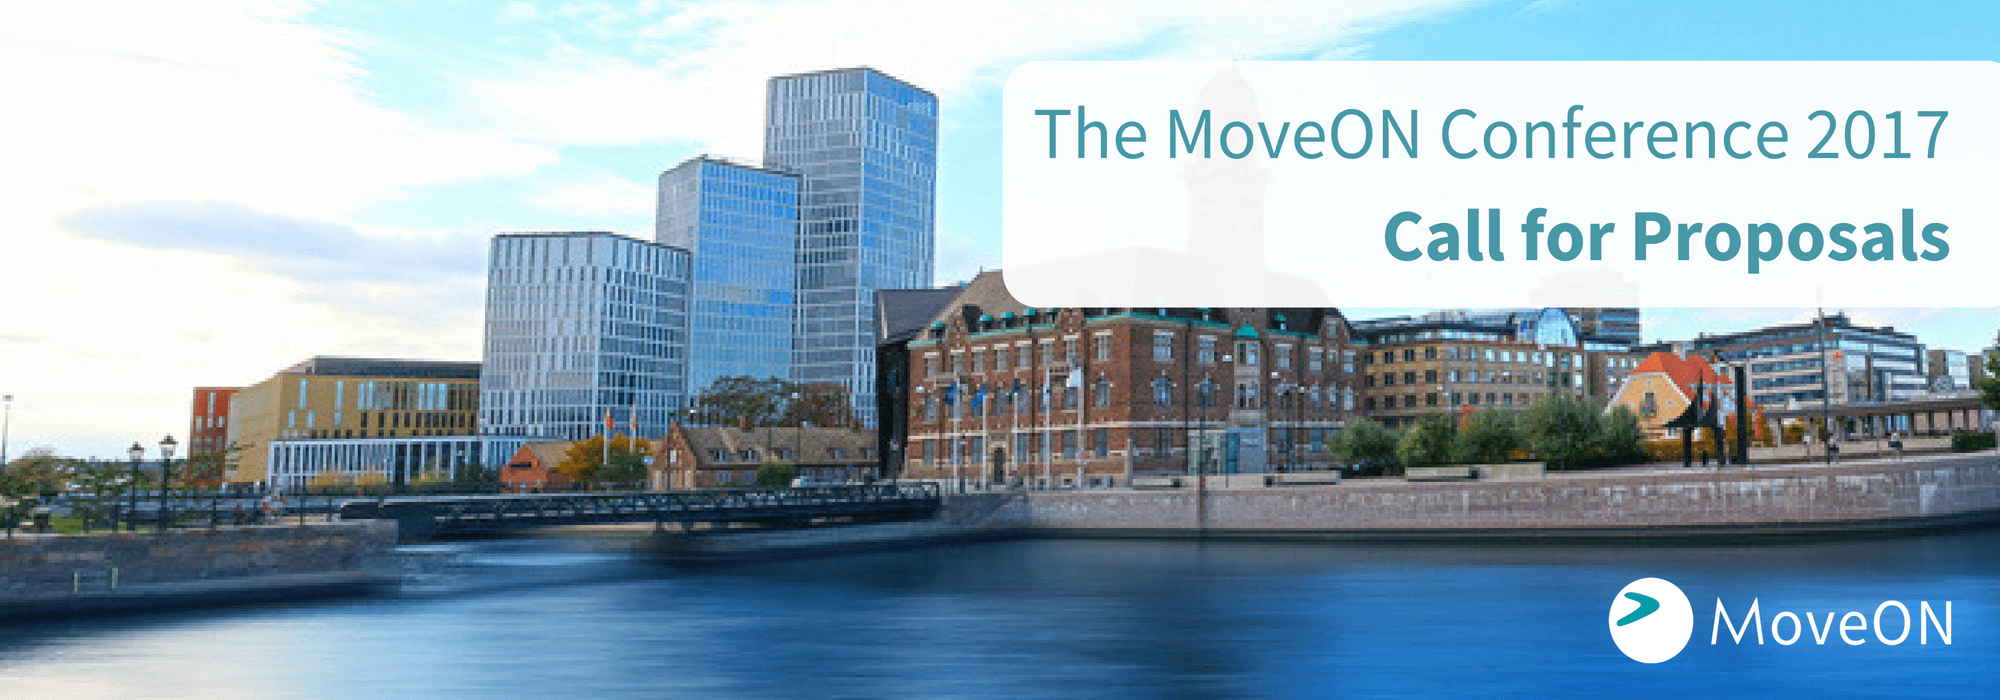 web-banner-moveonconf17-call-for-speakers